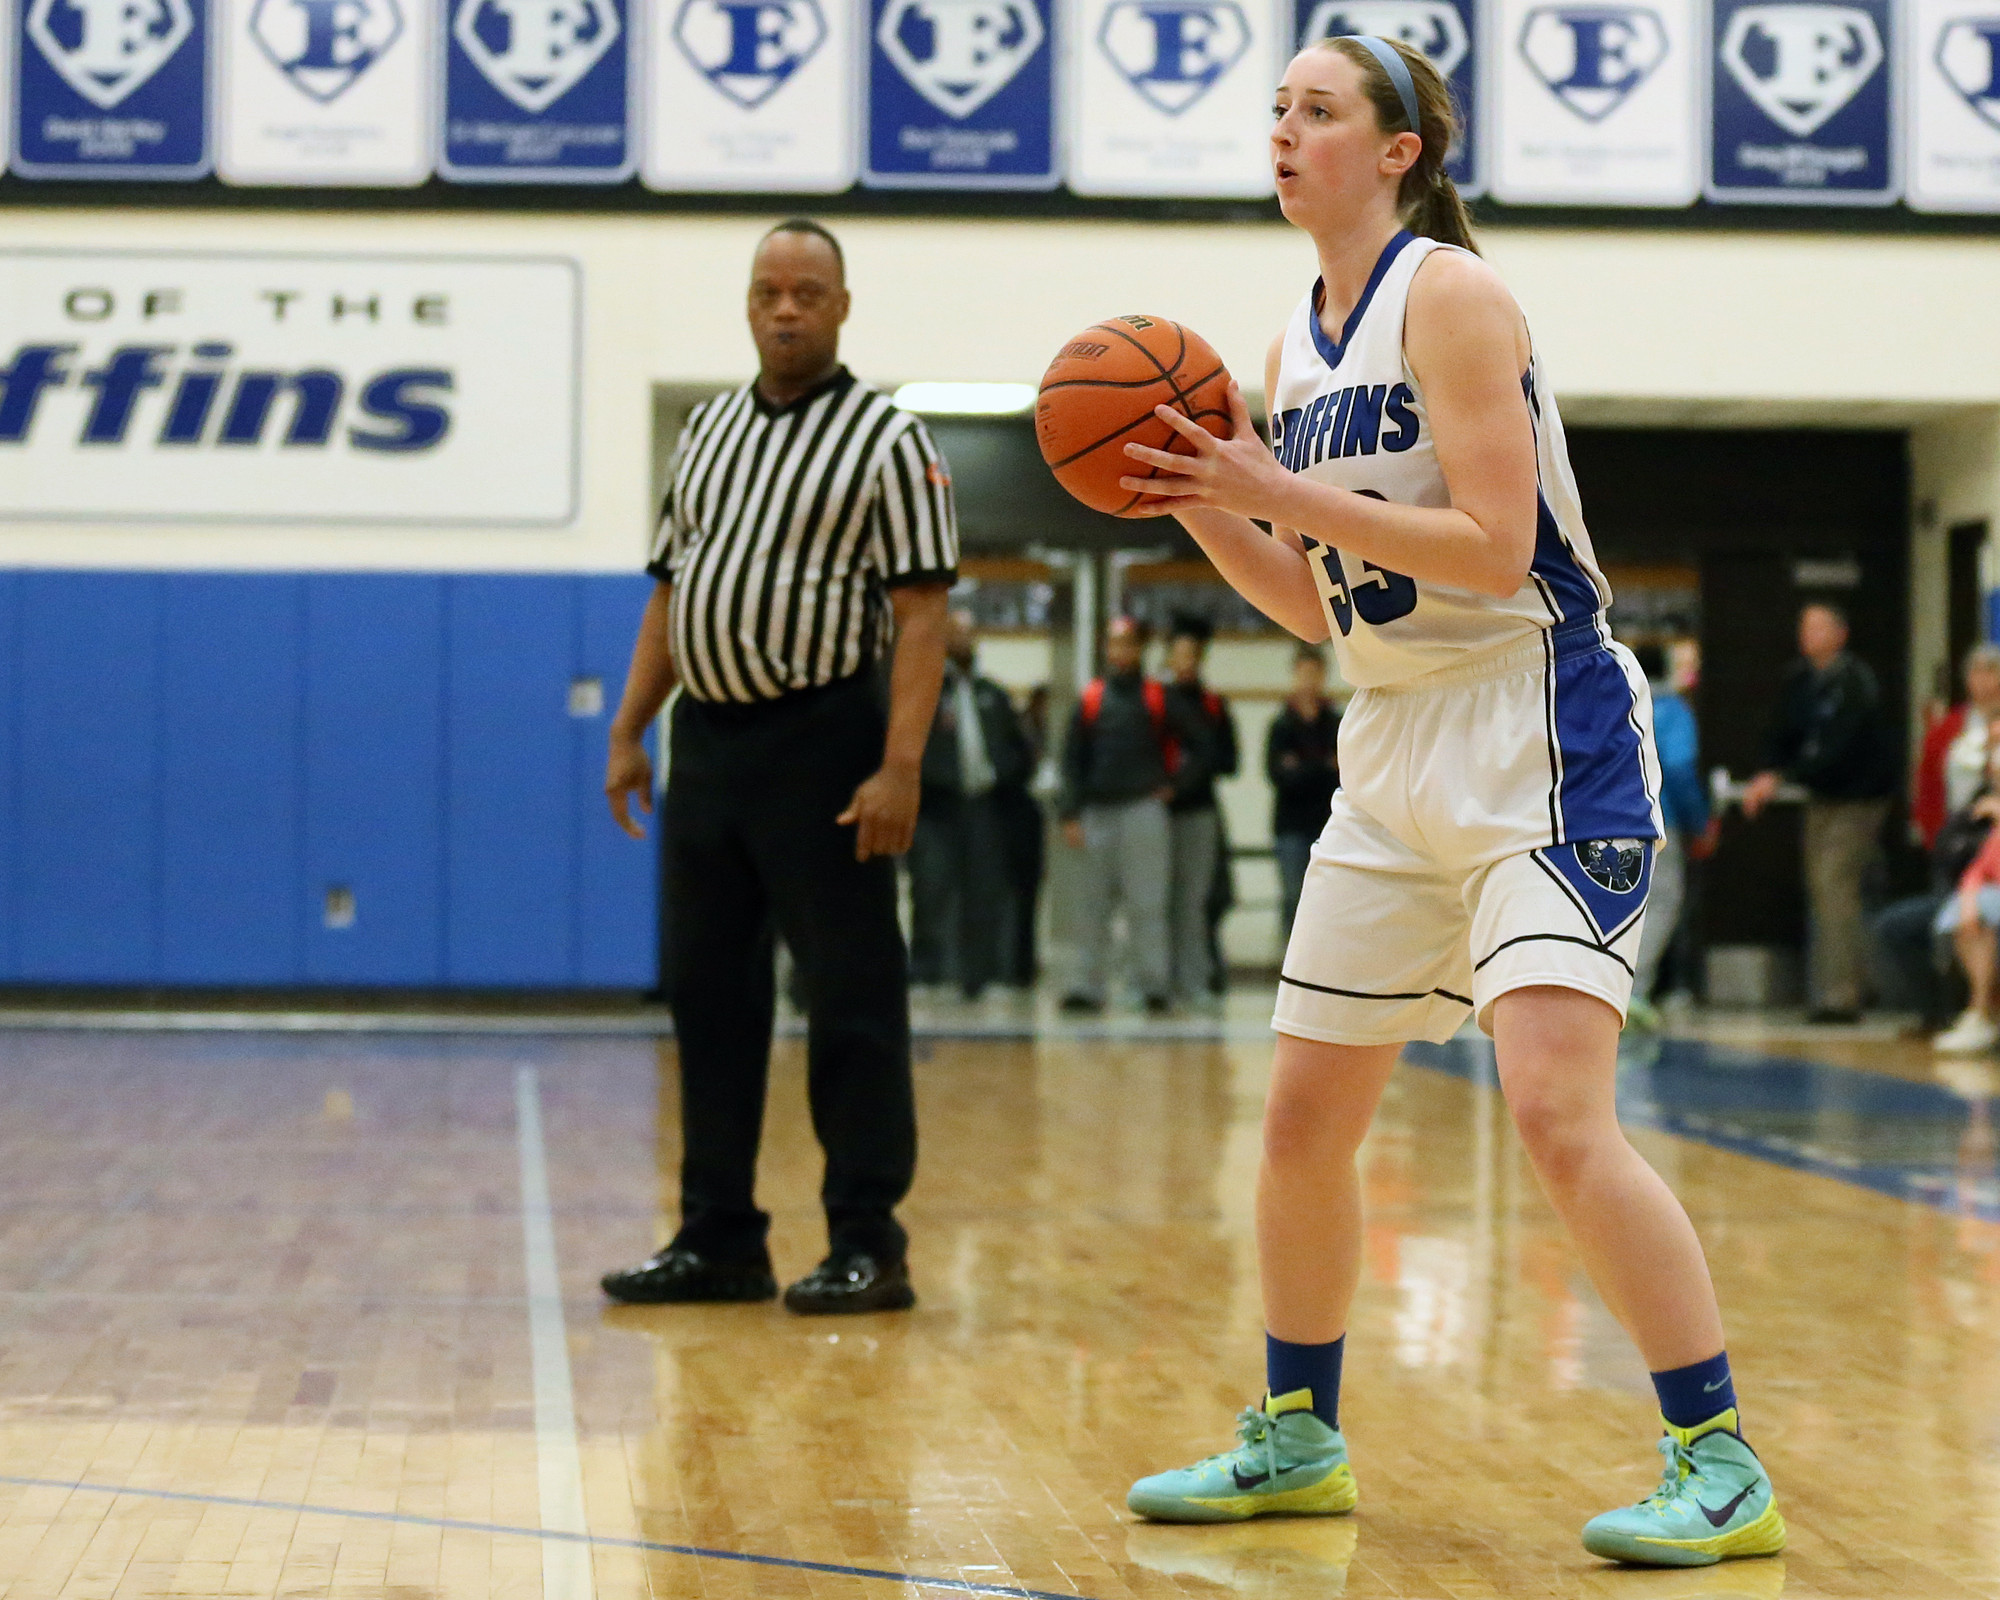 Girls Basketball Lincoln Way East S Claire Mcmahon